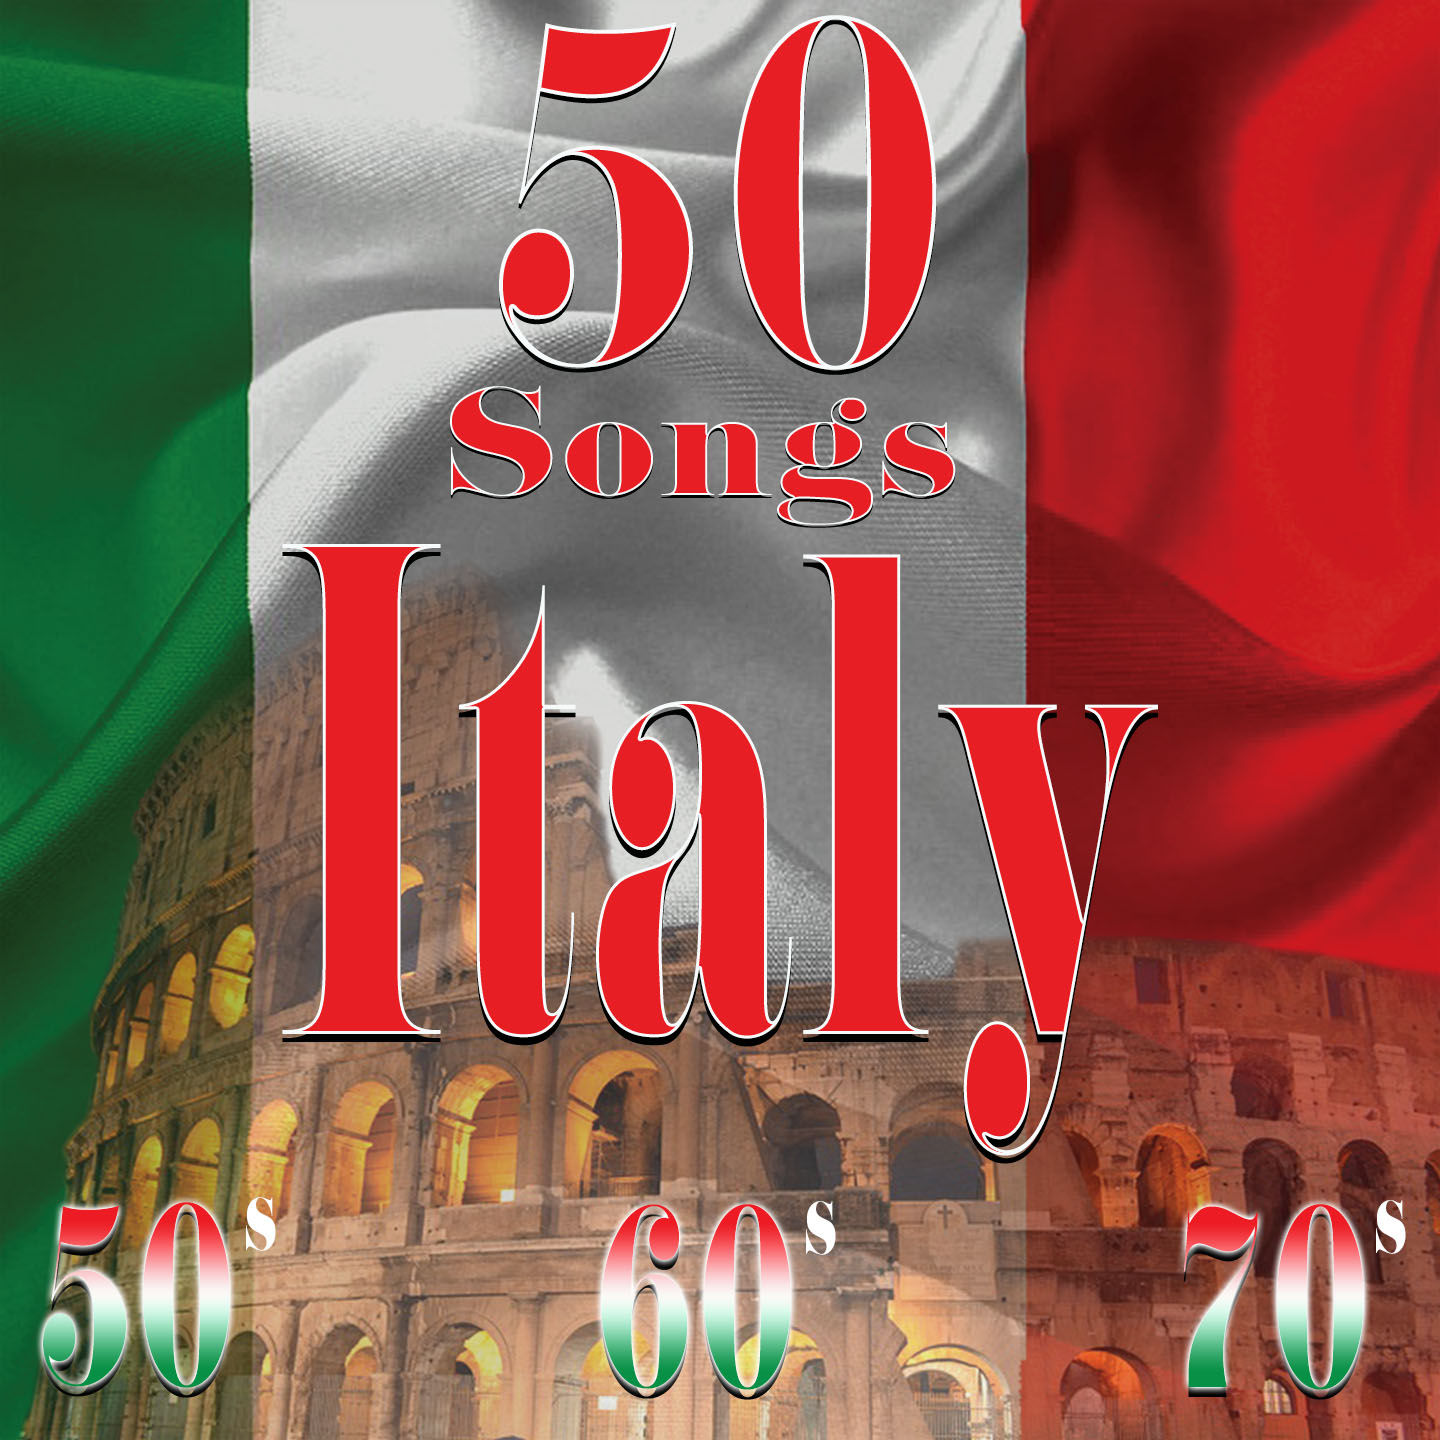 Italy 50' 60' 70' - 50 Songs